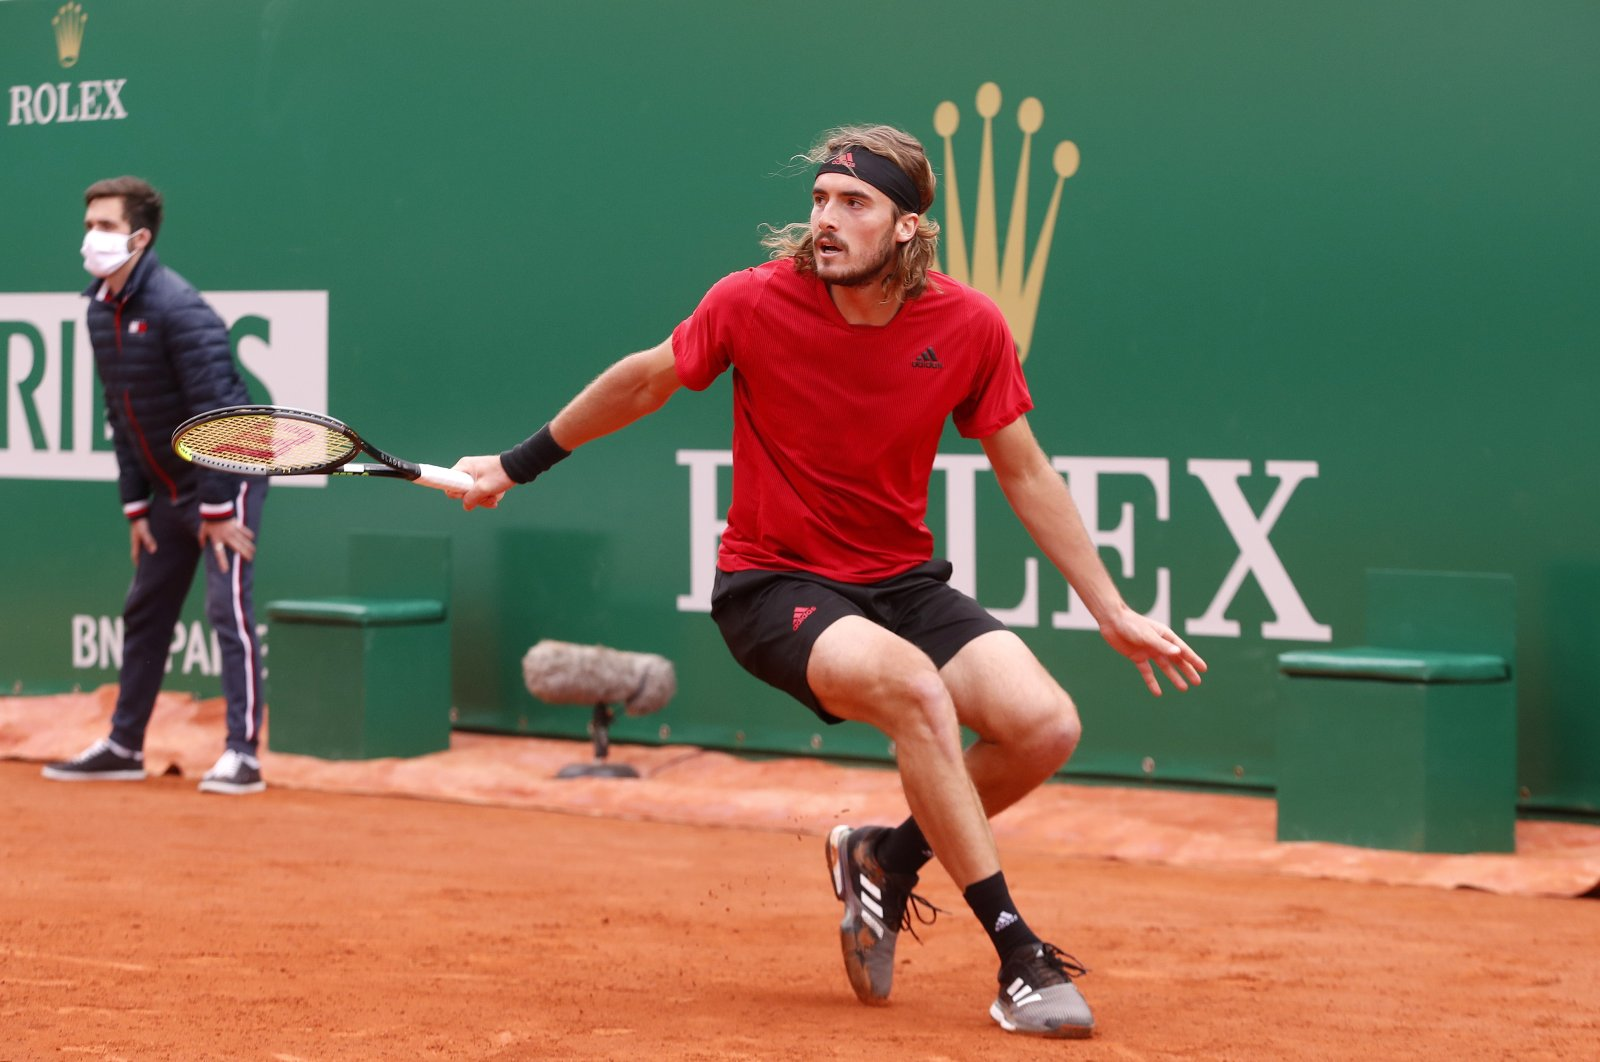 Greece's Stefanos Tsitsipas in action during his quarterfinal match against Spain's Alejandro Davidovich Fokina at the Monte Carlo Masters, Roquebrune Cap Martin, France, April 16, 2021. (EPA Photo)